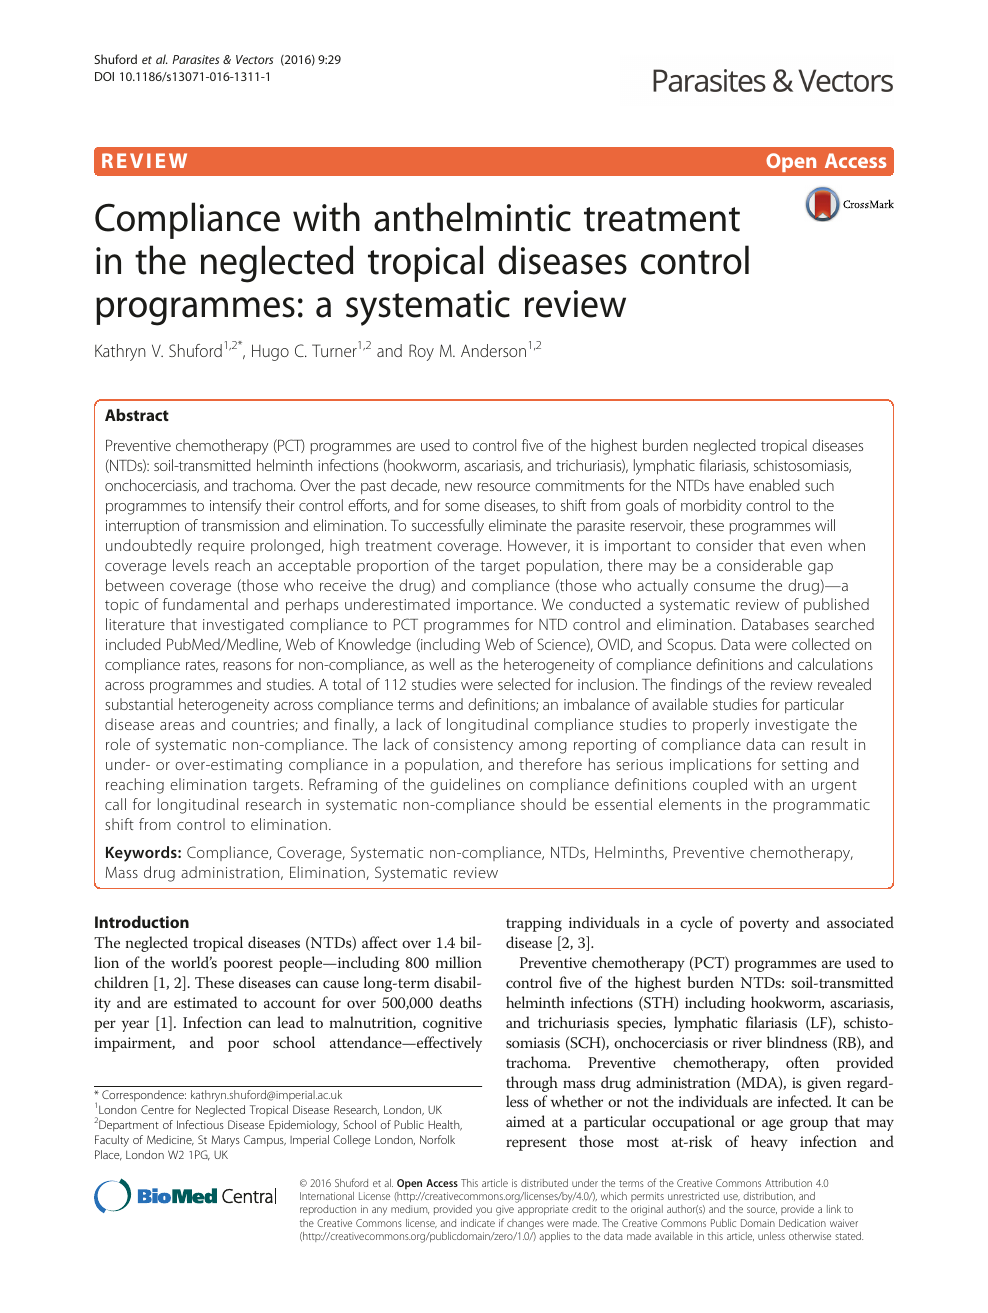 anthelmintic meaning in medicine